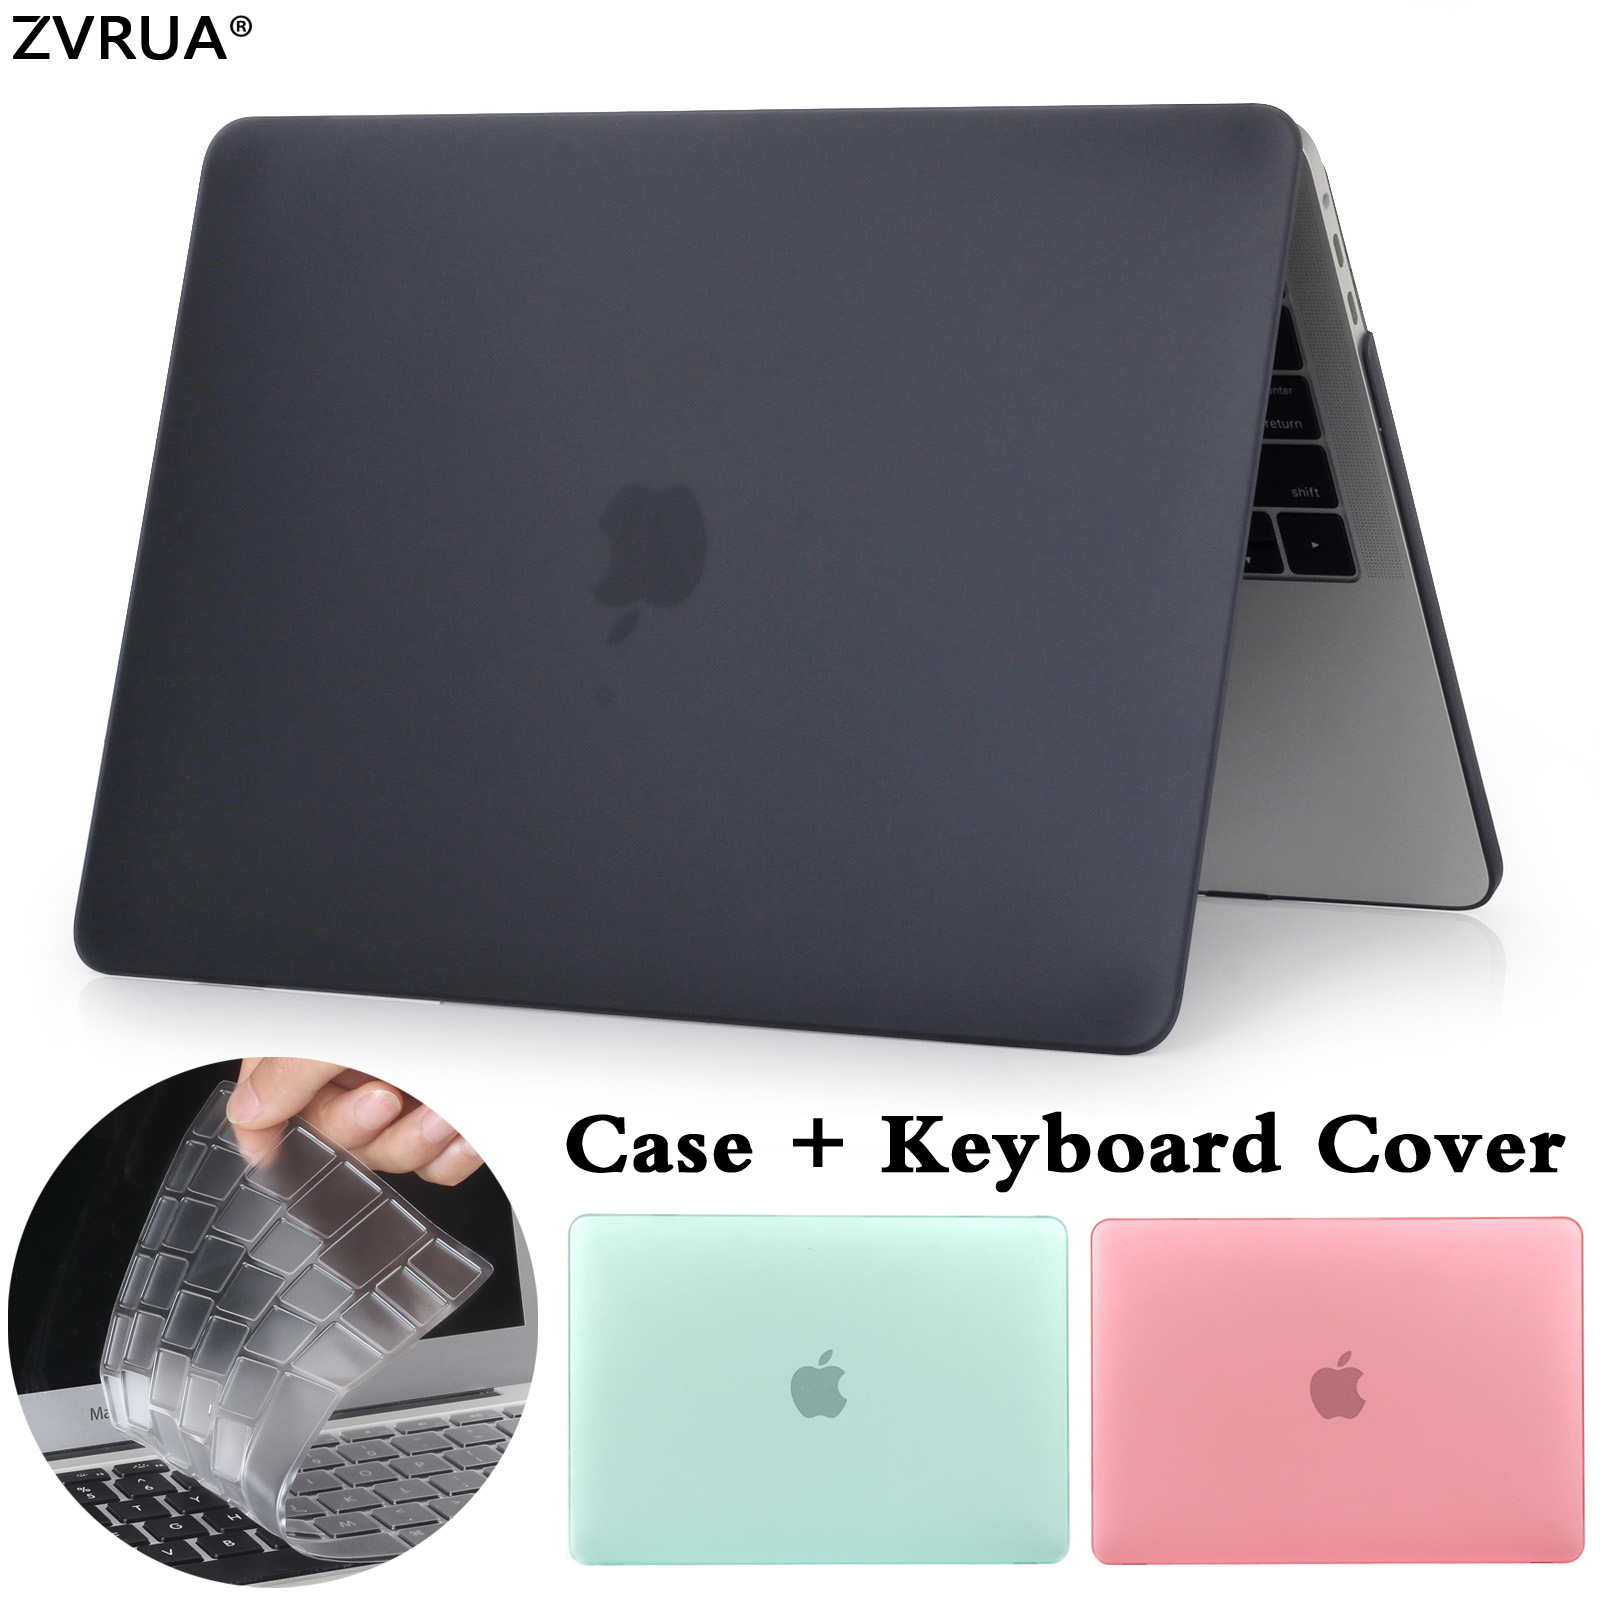 New laptop Case For APPle MacBook Air Pro Retina 11 12 13 13.3 15 15.4 inch with Touch Bar 2017 A1706 A1707 A1708+Keyboard Cover matte glitter bling case for apple macbook air pro retina 11 12 13 15 with touch bar 2017 a1706 a1707 a1708 for macbook 11 case